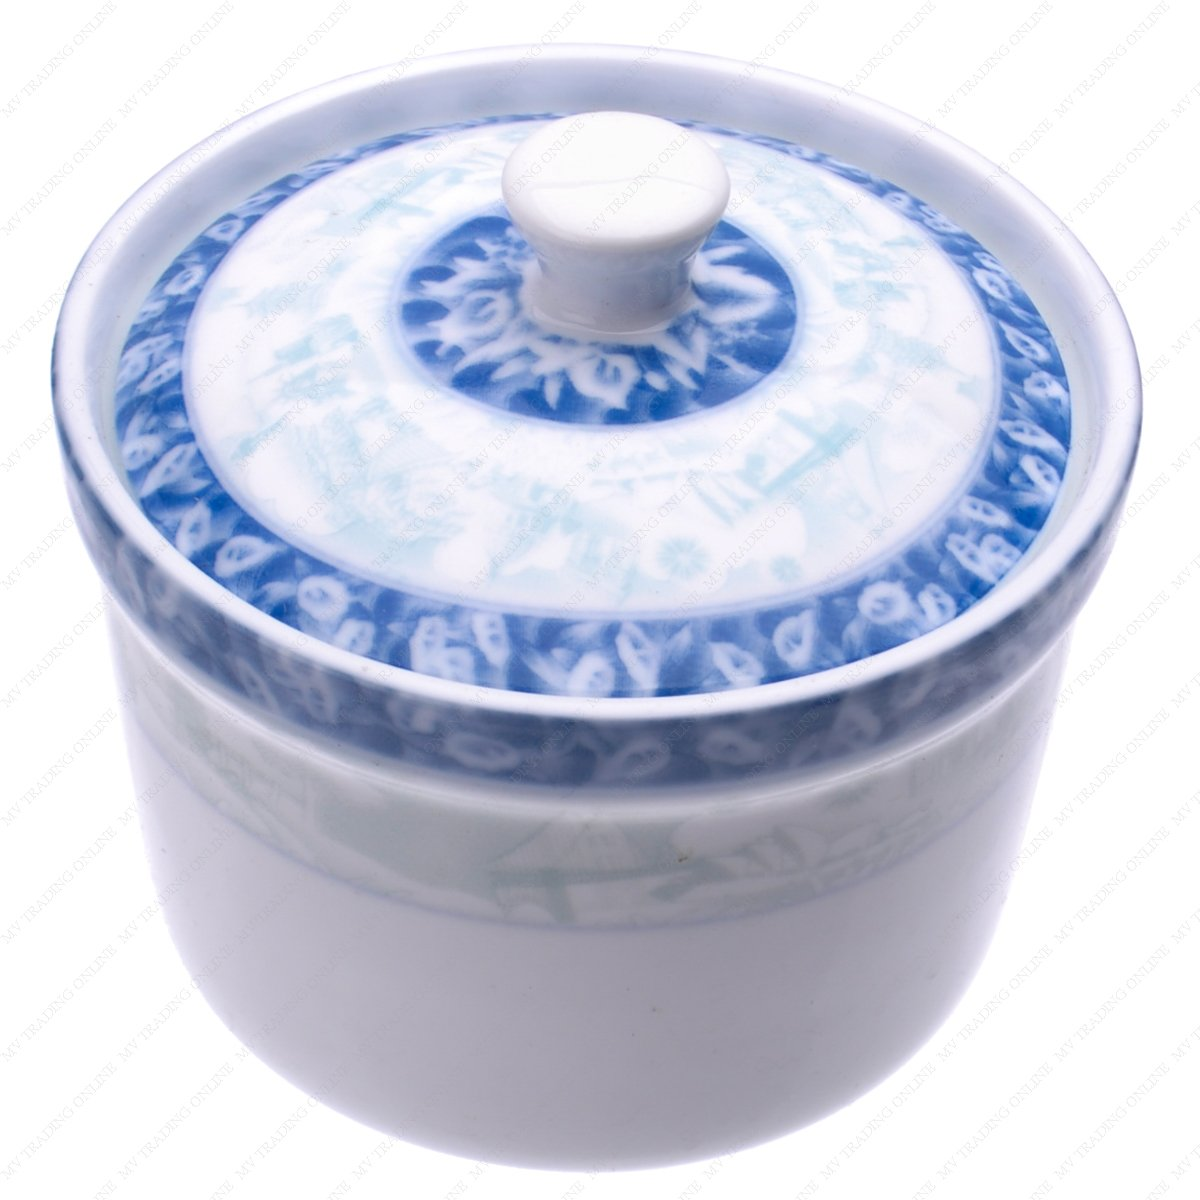 M.V. Trading PCG35 Personal Ceramic Steam Stew Pot / Soup Bowl with Lid, World Scenery Design, 3-1/2 Inches (DIA.) x 2-5/8 Inches (H), 3/4 Cups (6 Ounces)